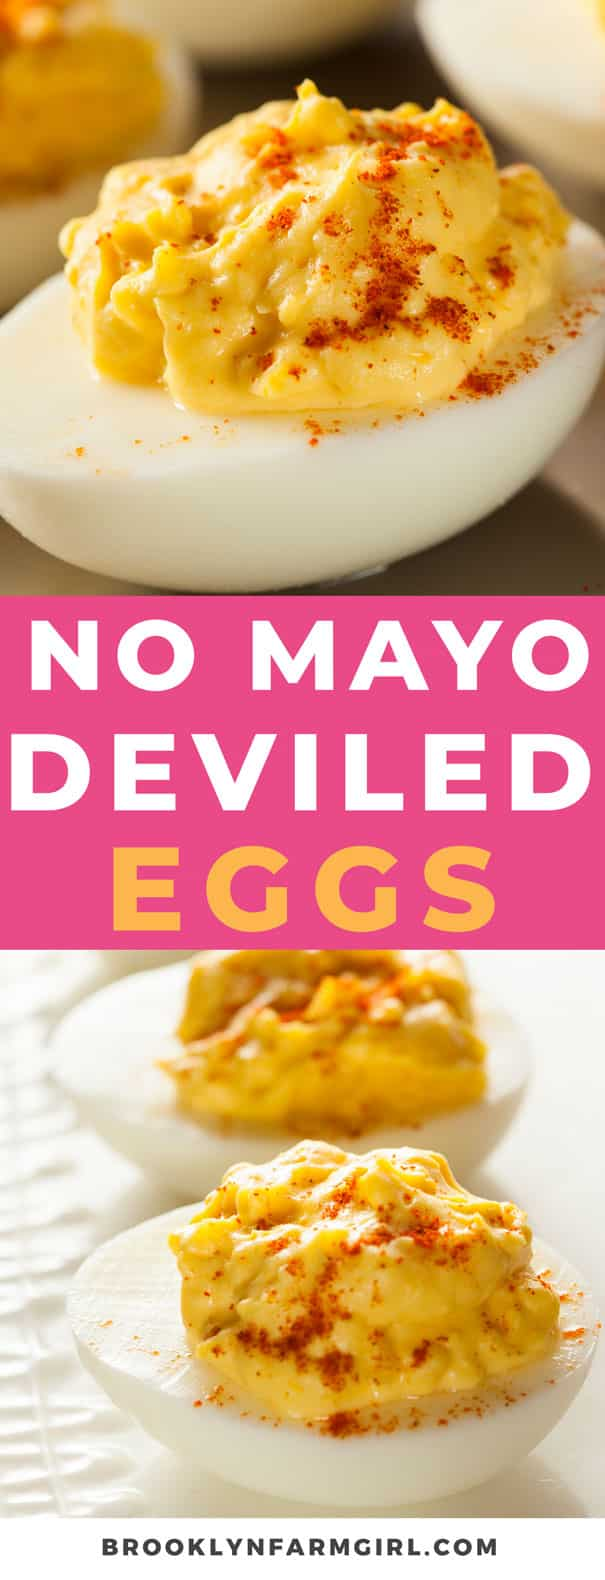 Easy No Mayo Deviled Eggs recipe. These creamy deviled eggs are made with ranch dressing and cream cheese as a mayo substitute. These are a favorite party appetizer!